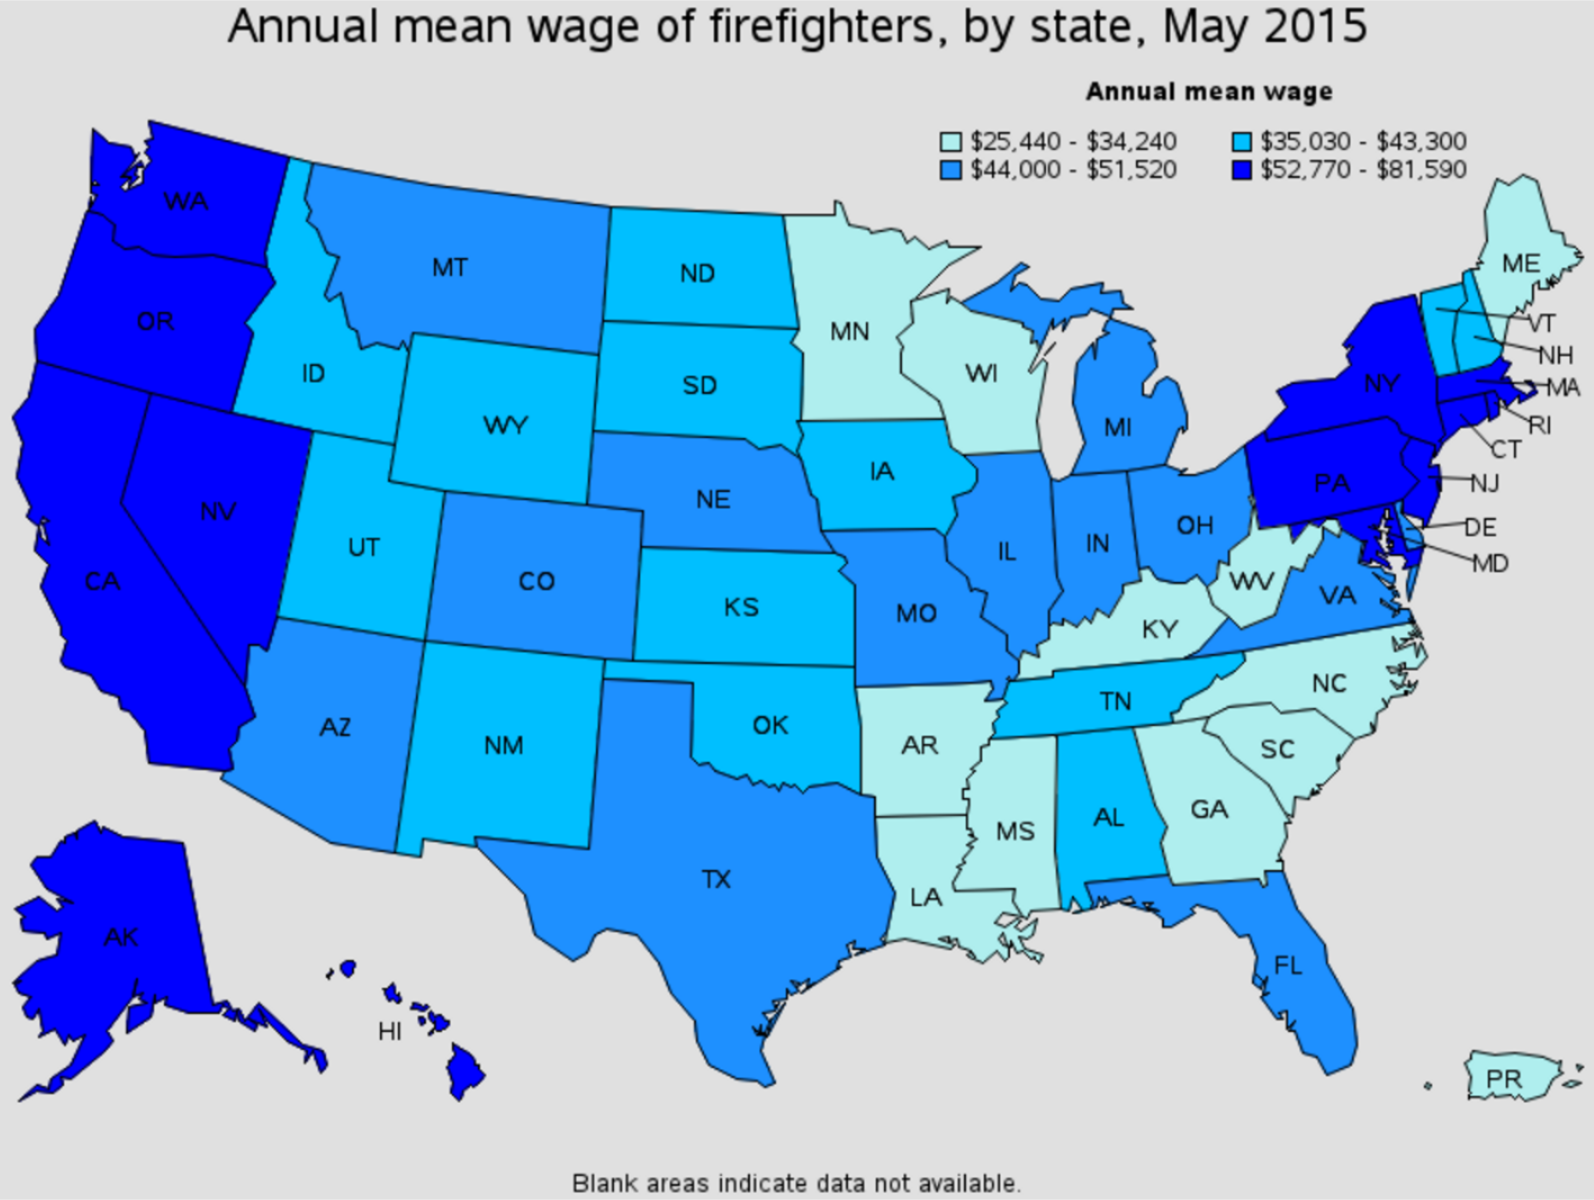 firefighter average salary by state Wilder Vermont